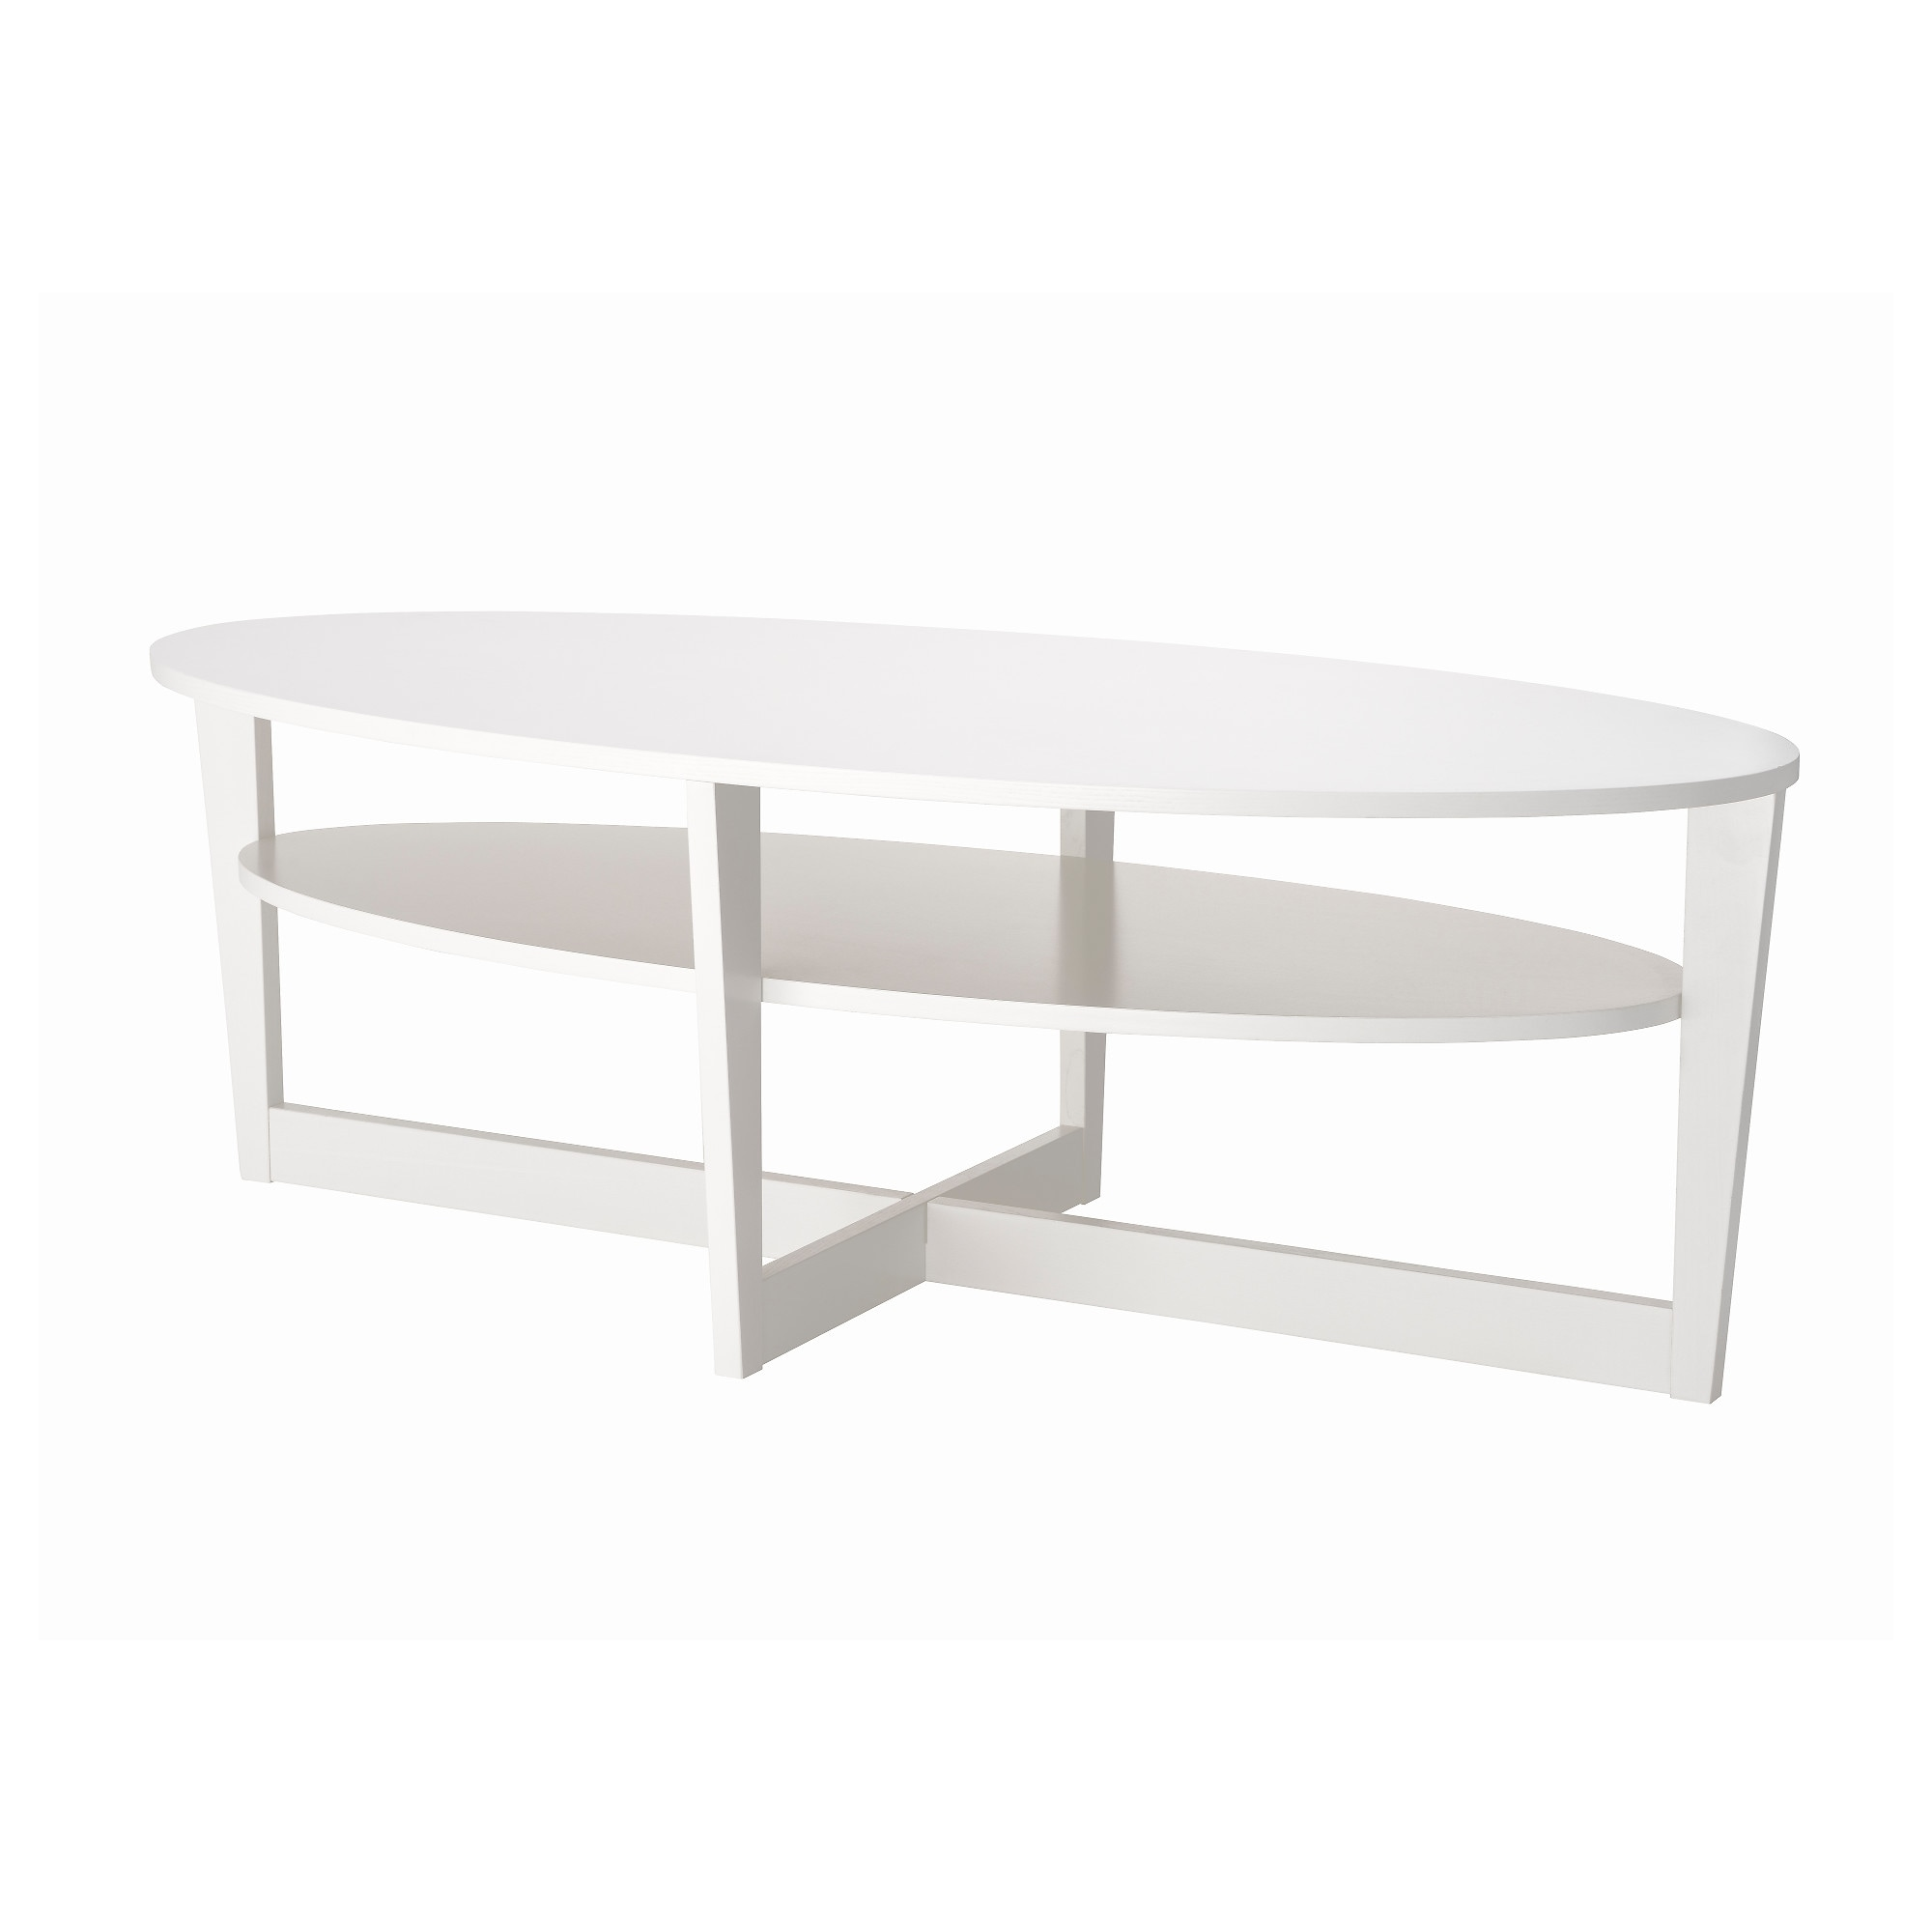 VEJMON Coffee table white IKEA